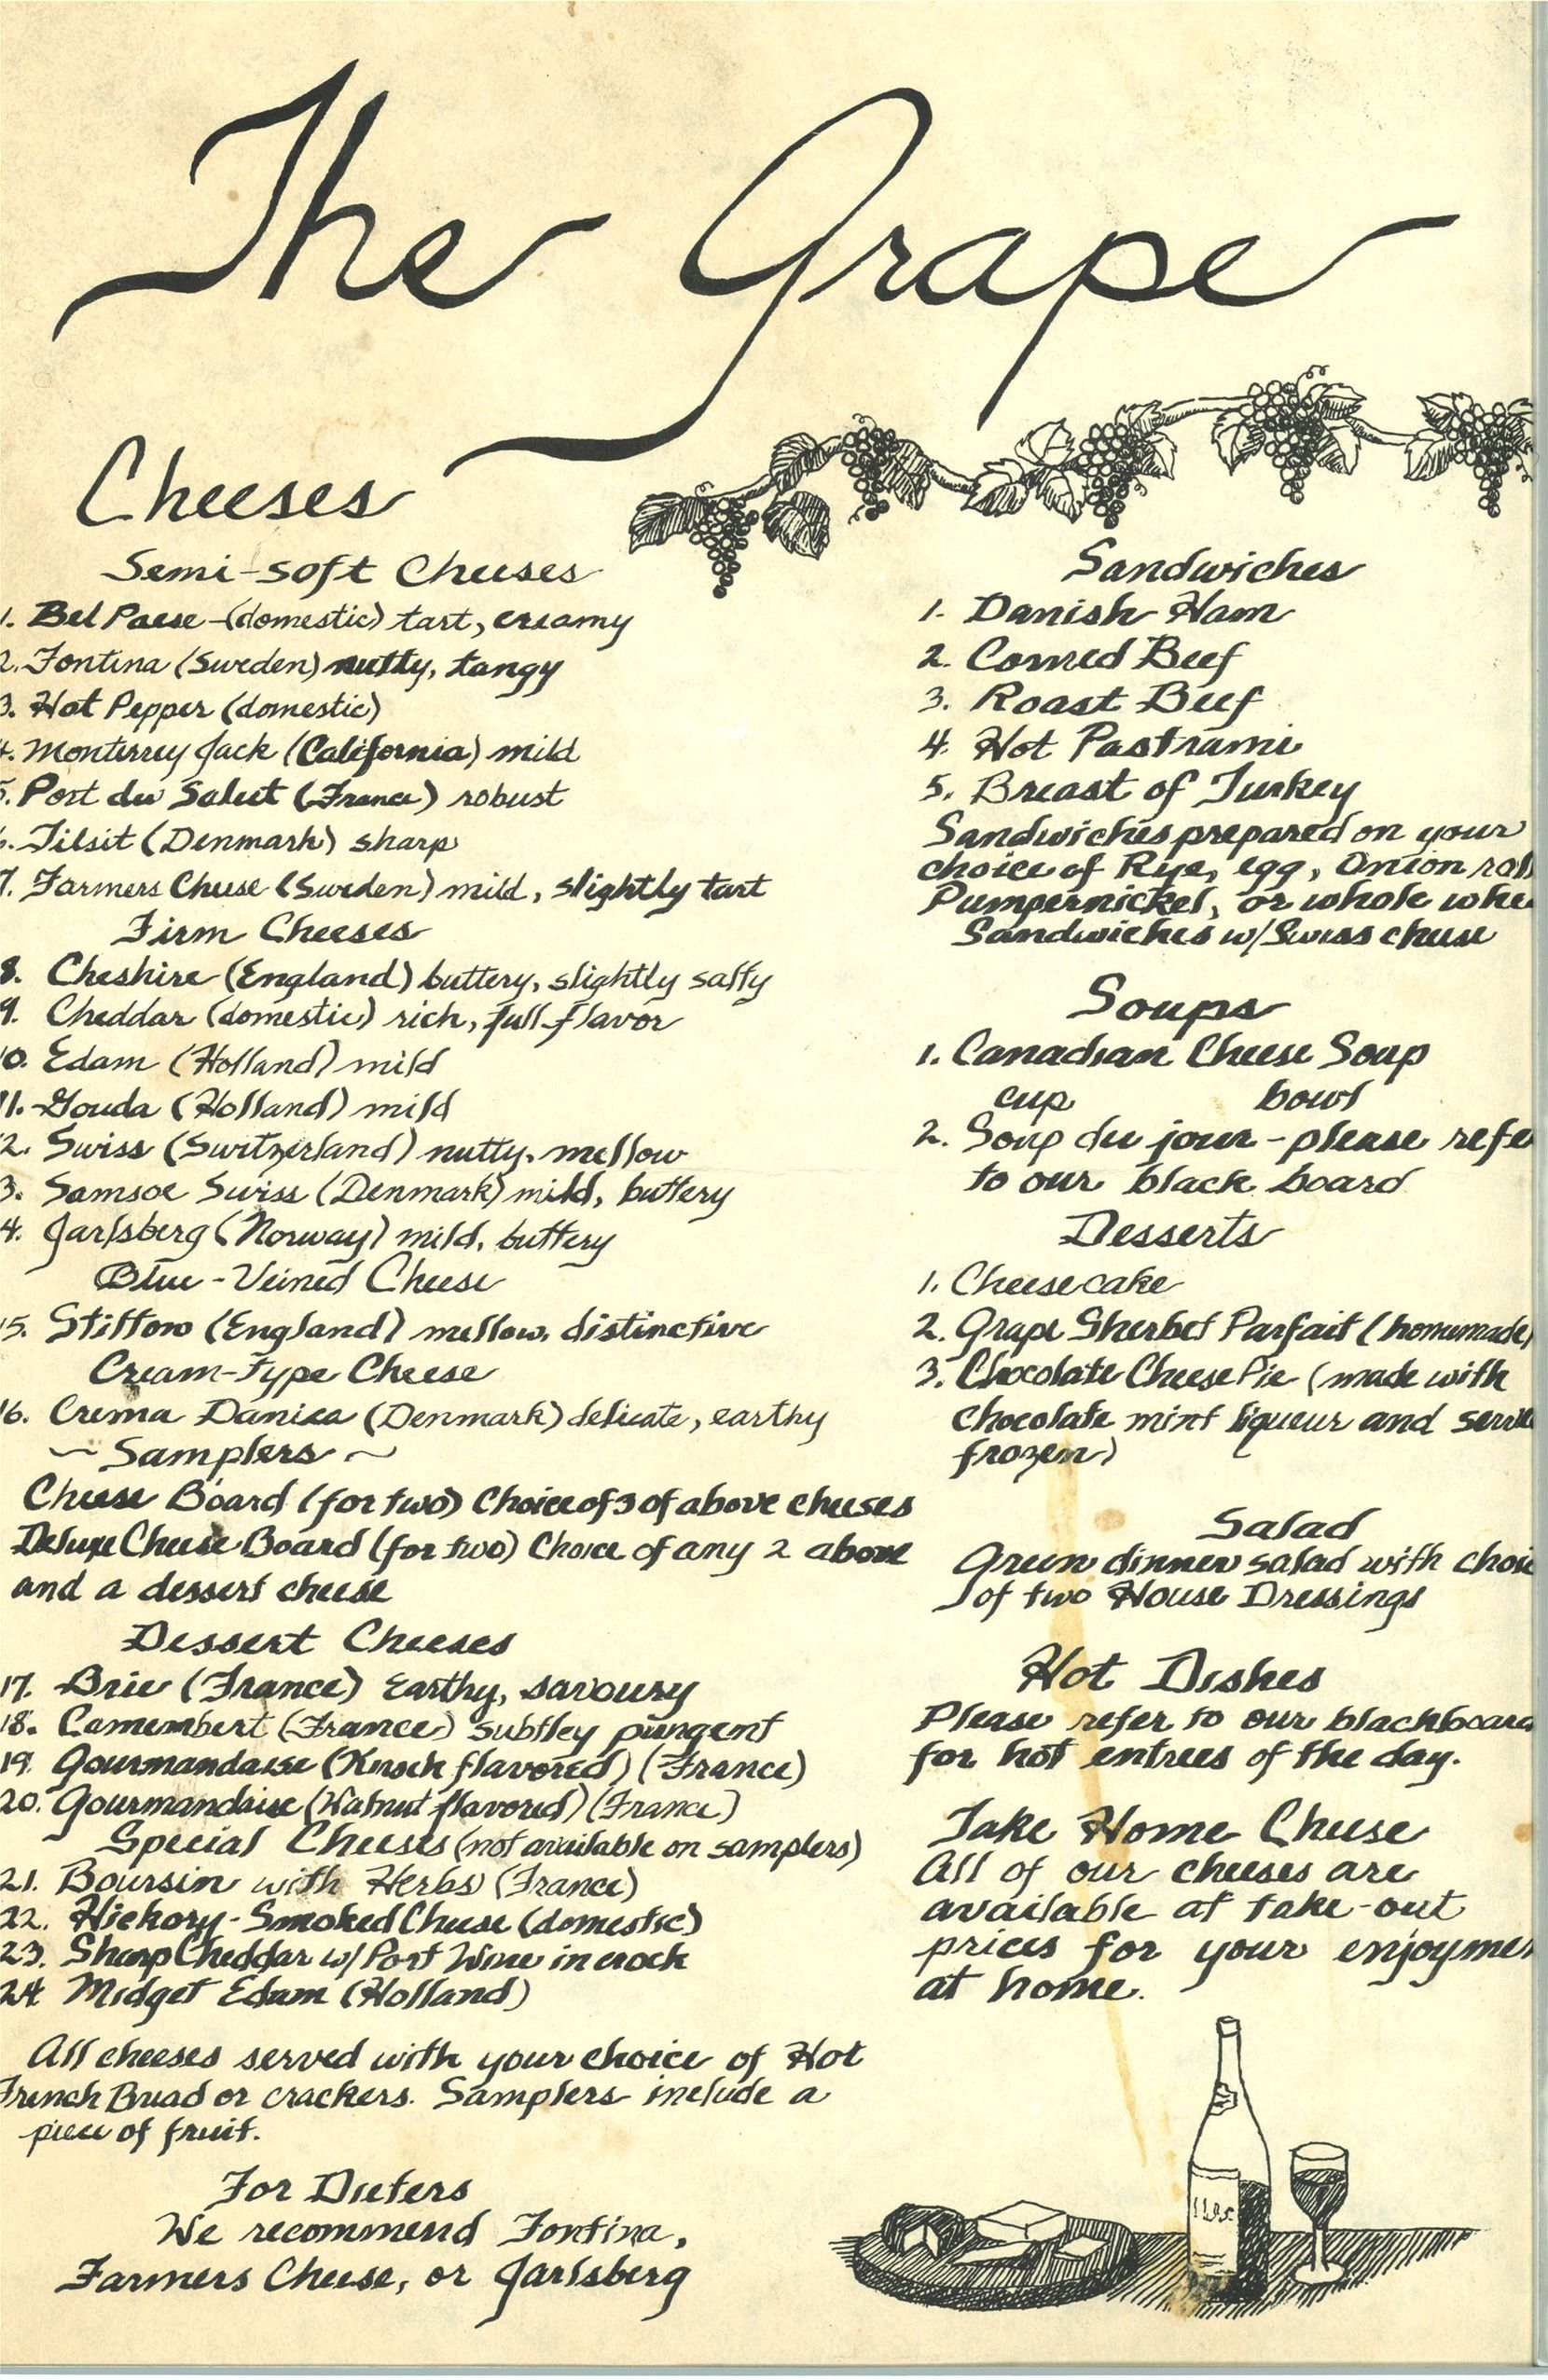 The Grape's opening menu from October 1972.